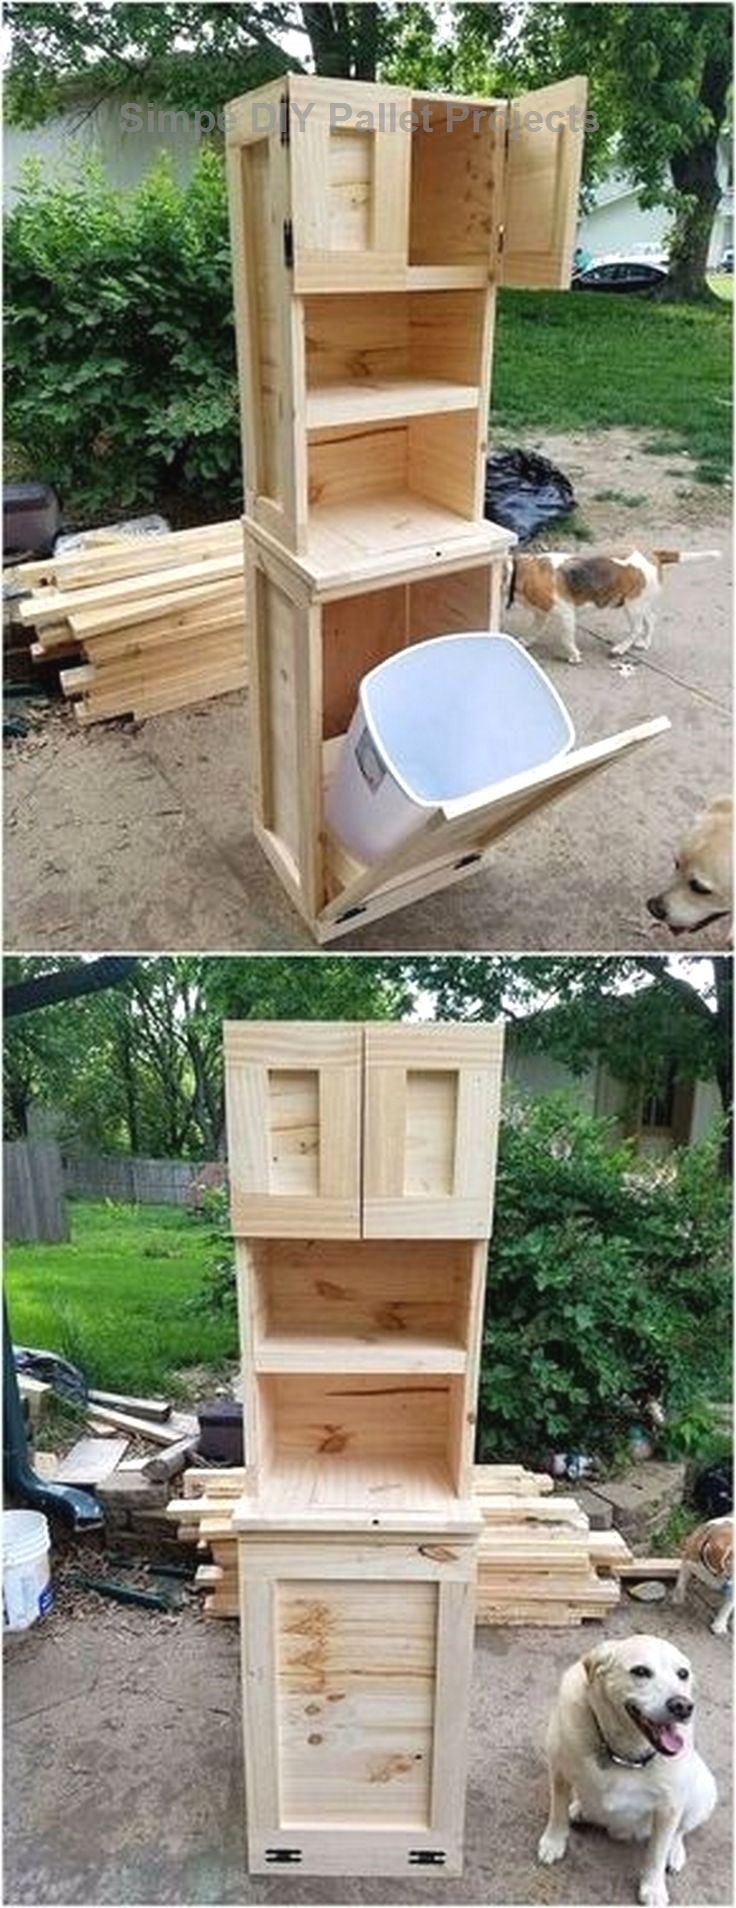 15 Incredible Do It Yourself Pallet Ideas  #pallet #woodpalletfurniture